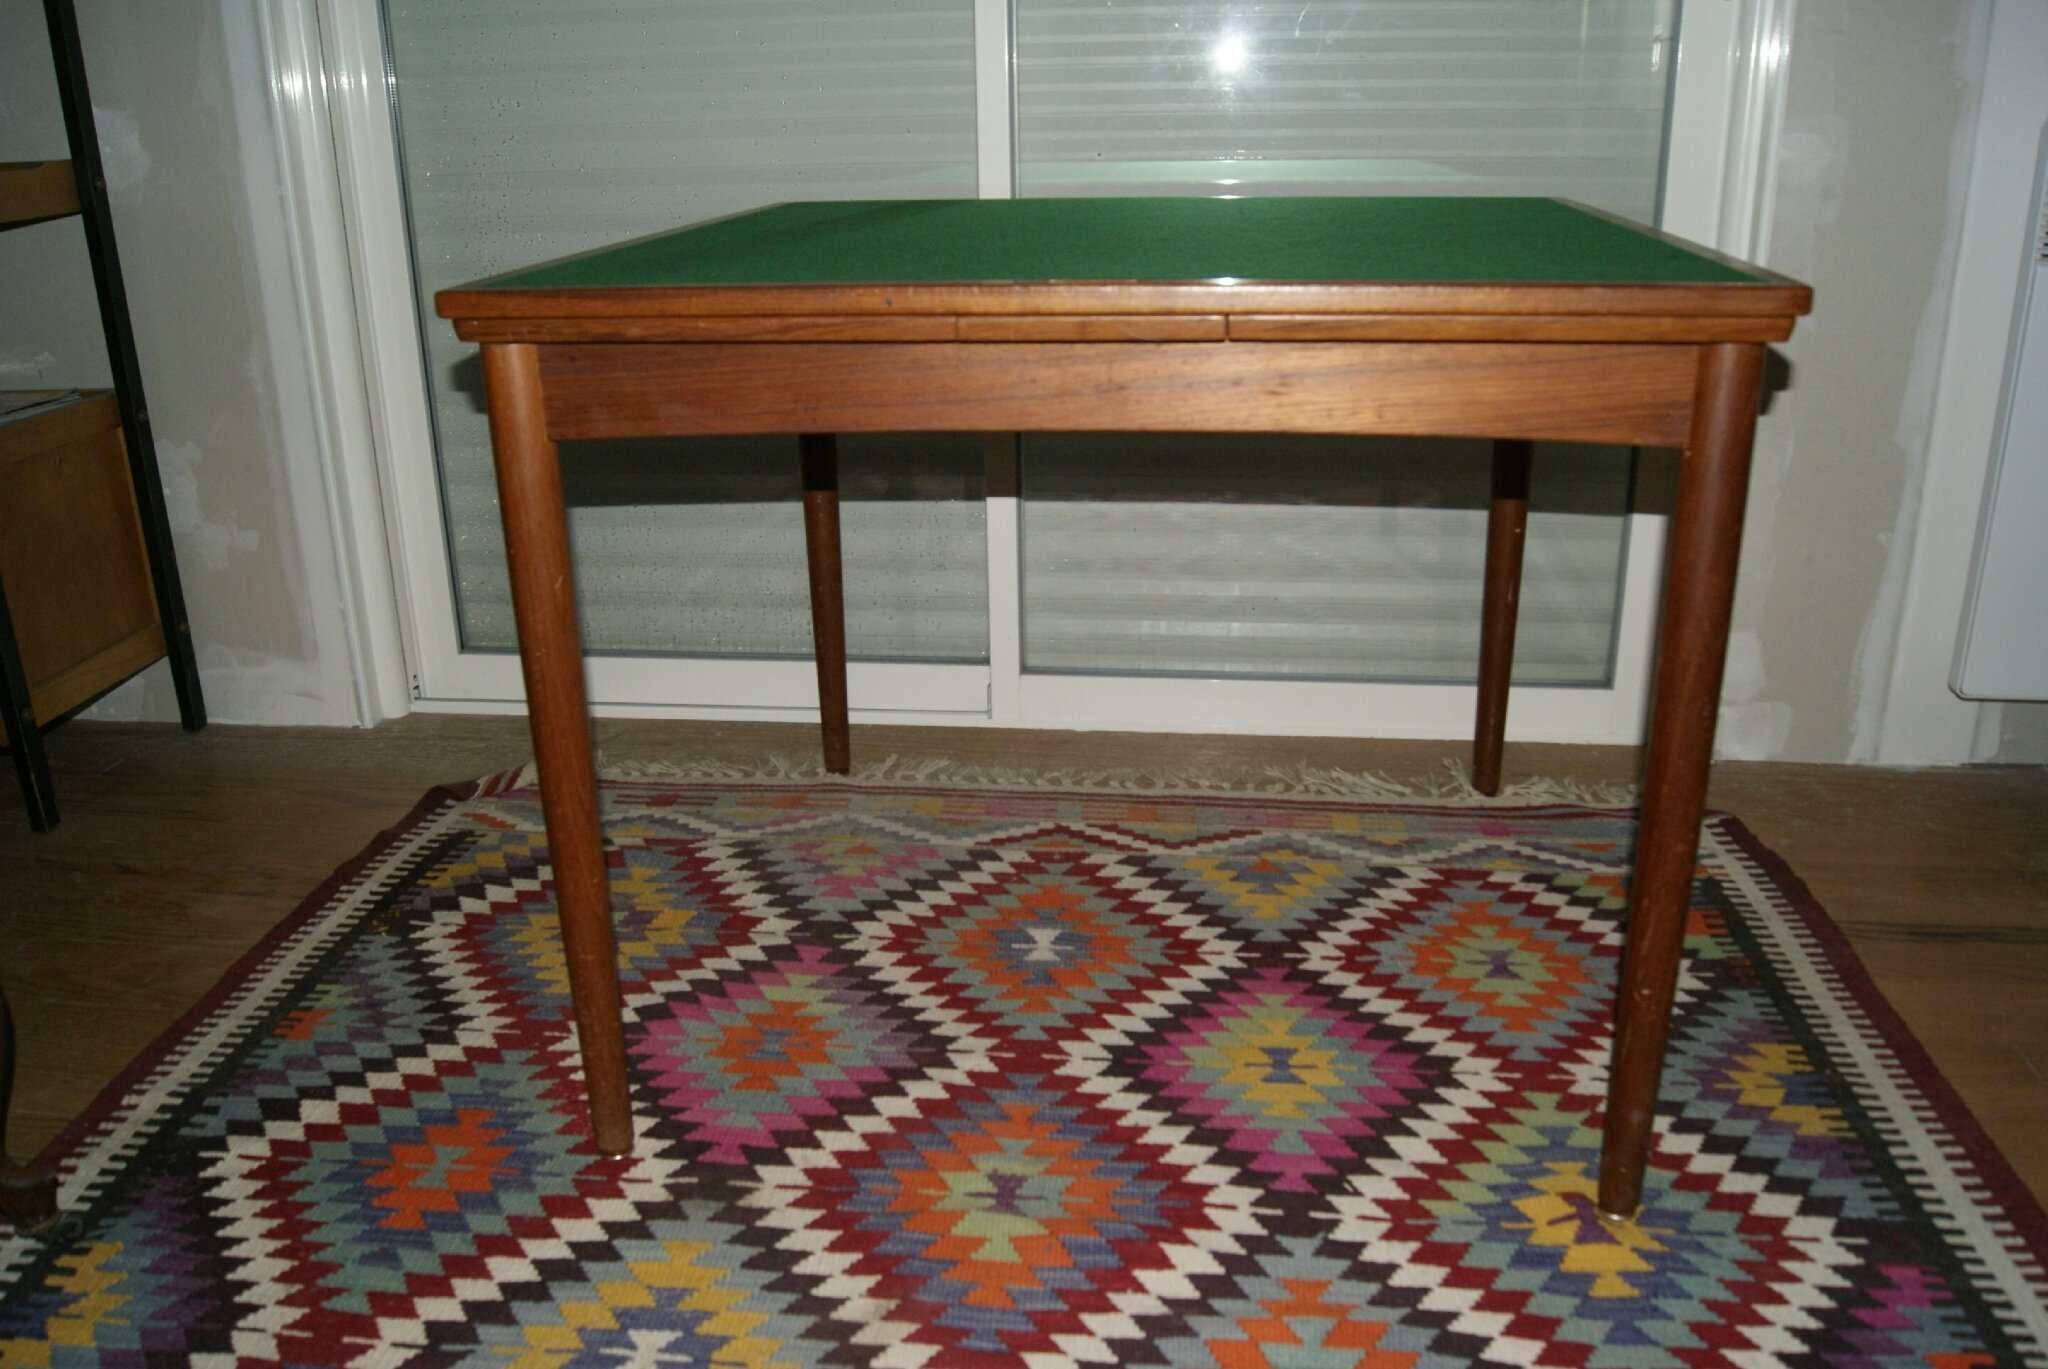 Table a jeux scandinave teck 1960 la brocante de nadine for Jeu des tables